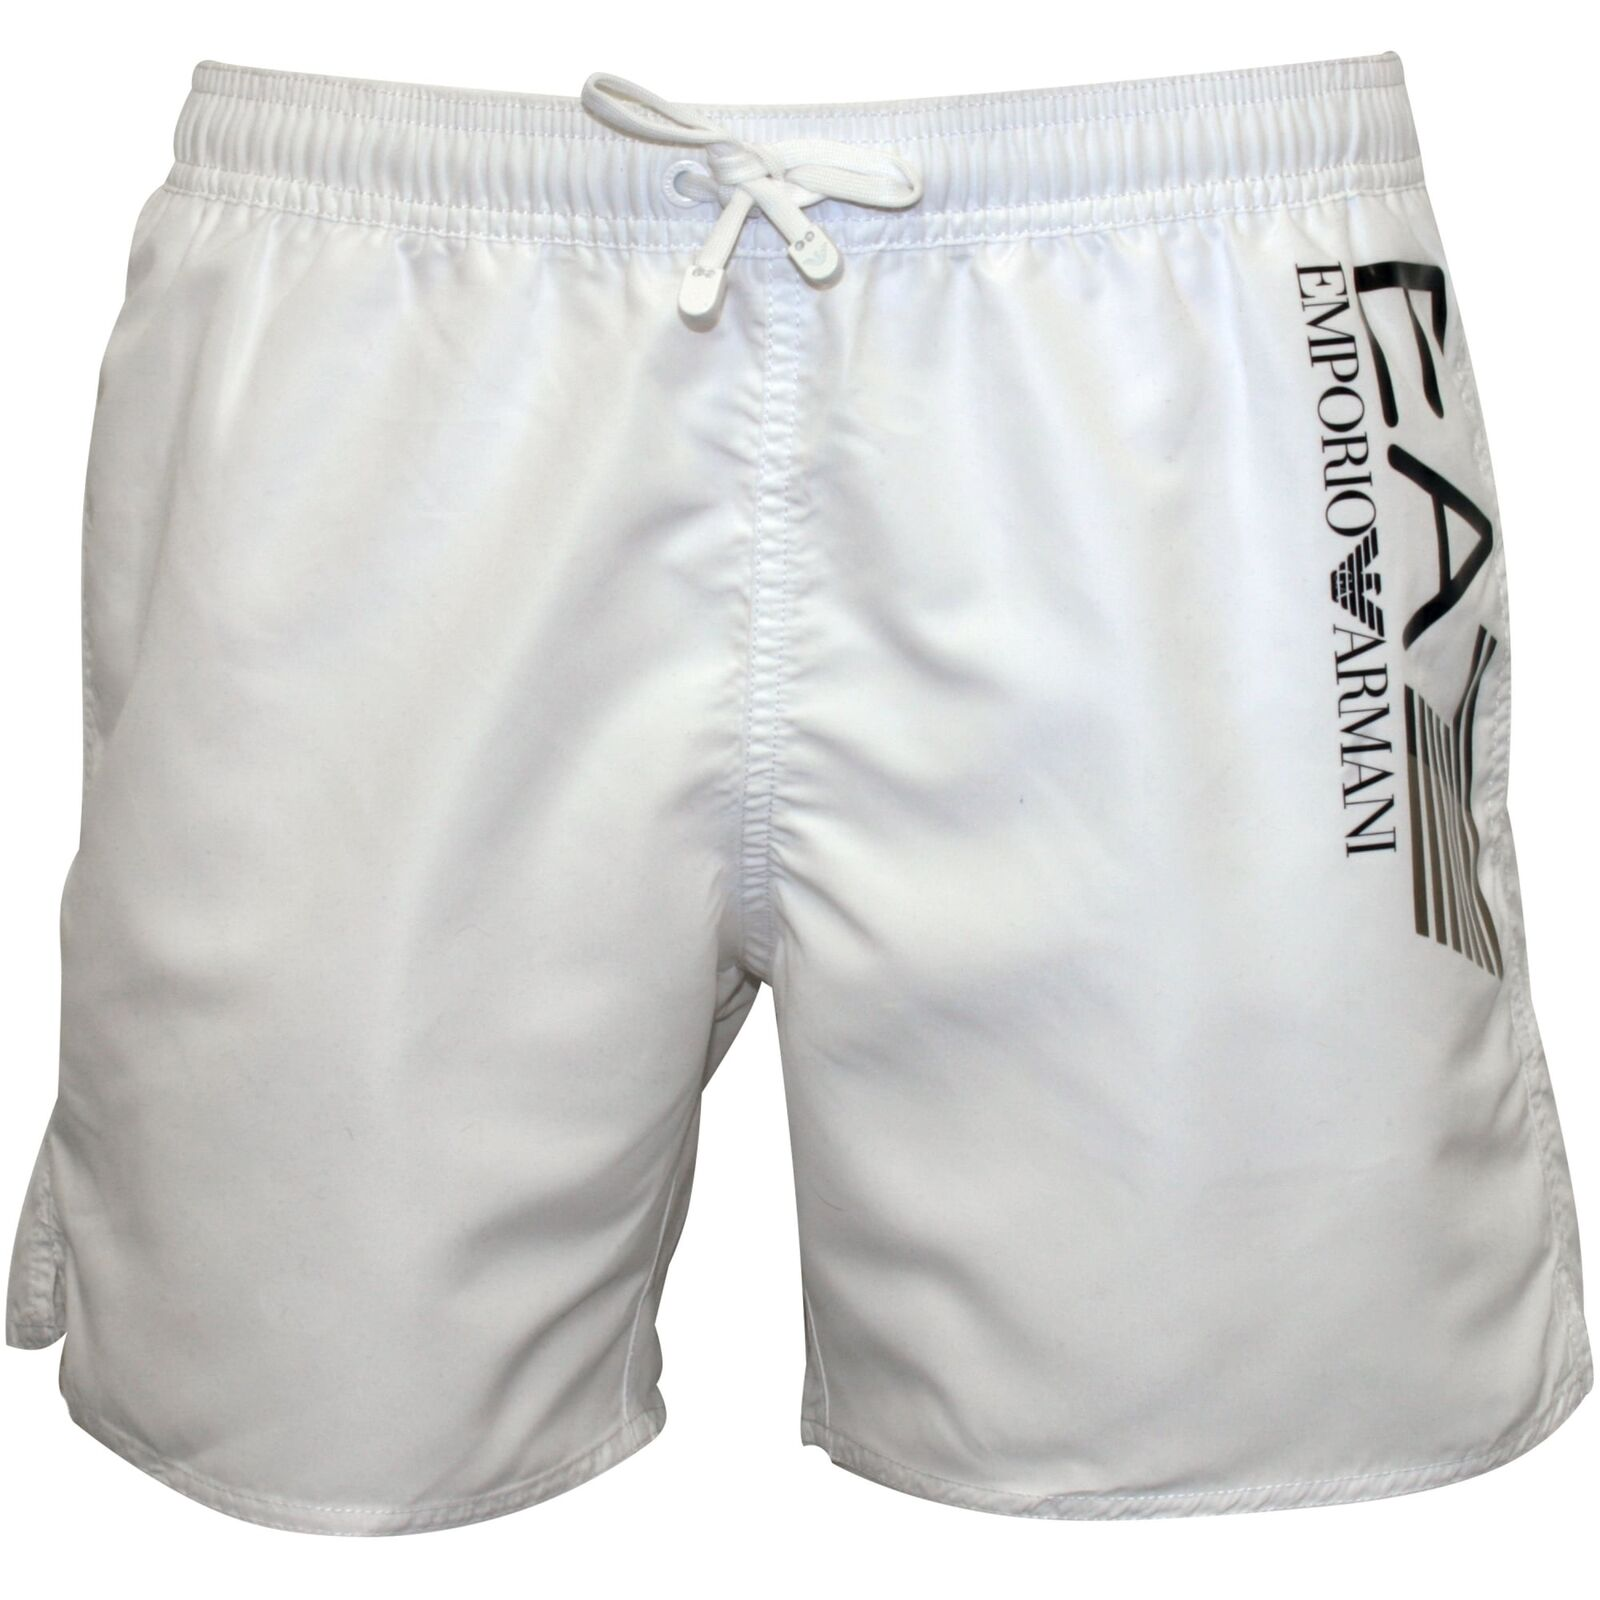 Emporio Armani EA7 Athletic Trim Luxe Men's Swim Shorts, White with gold